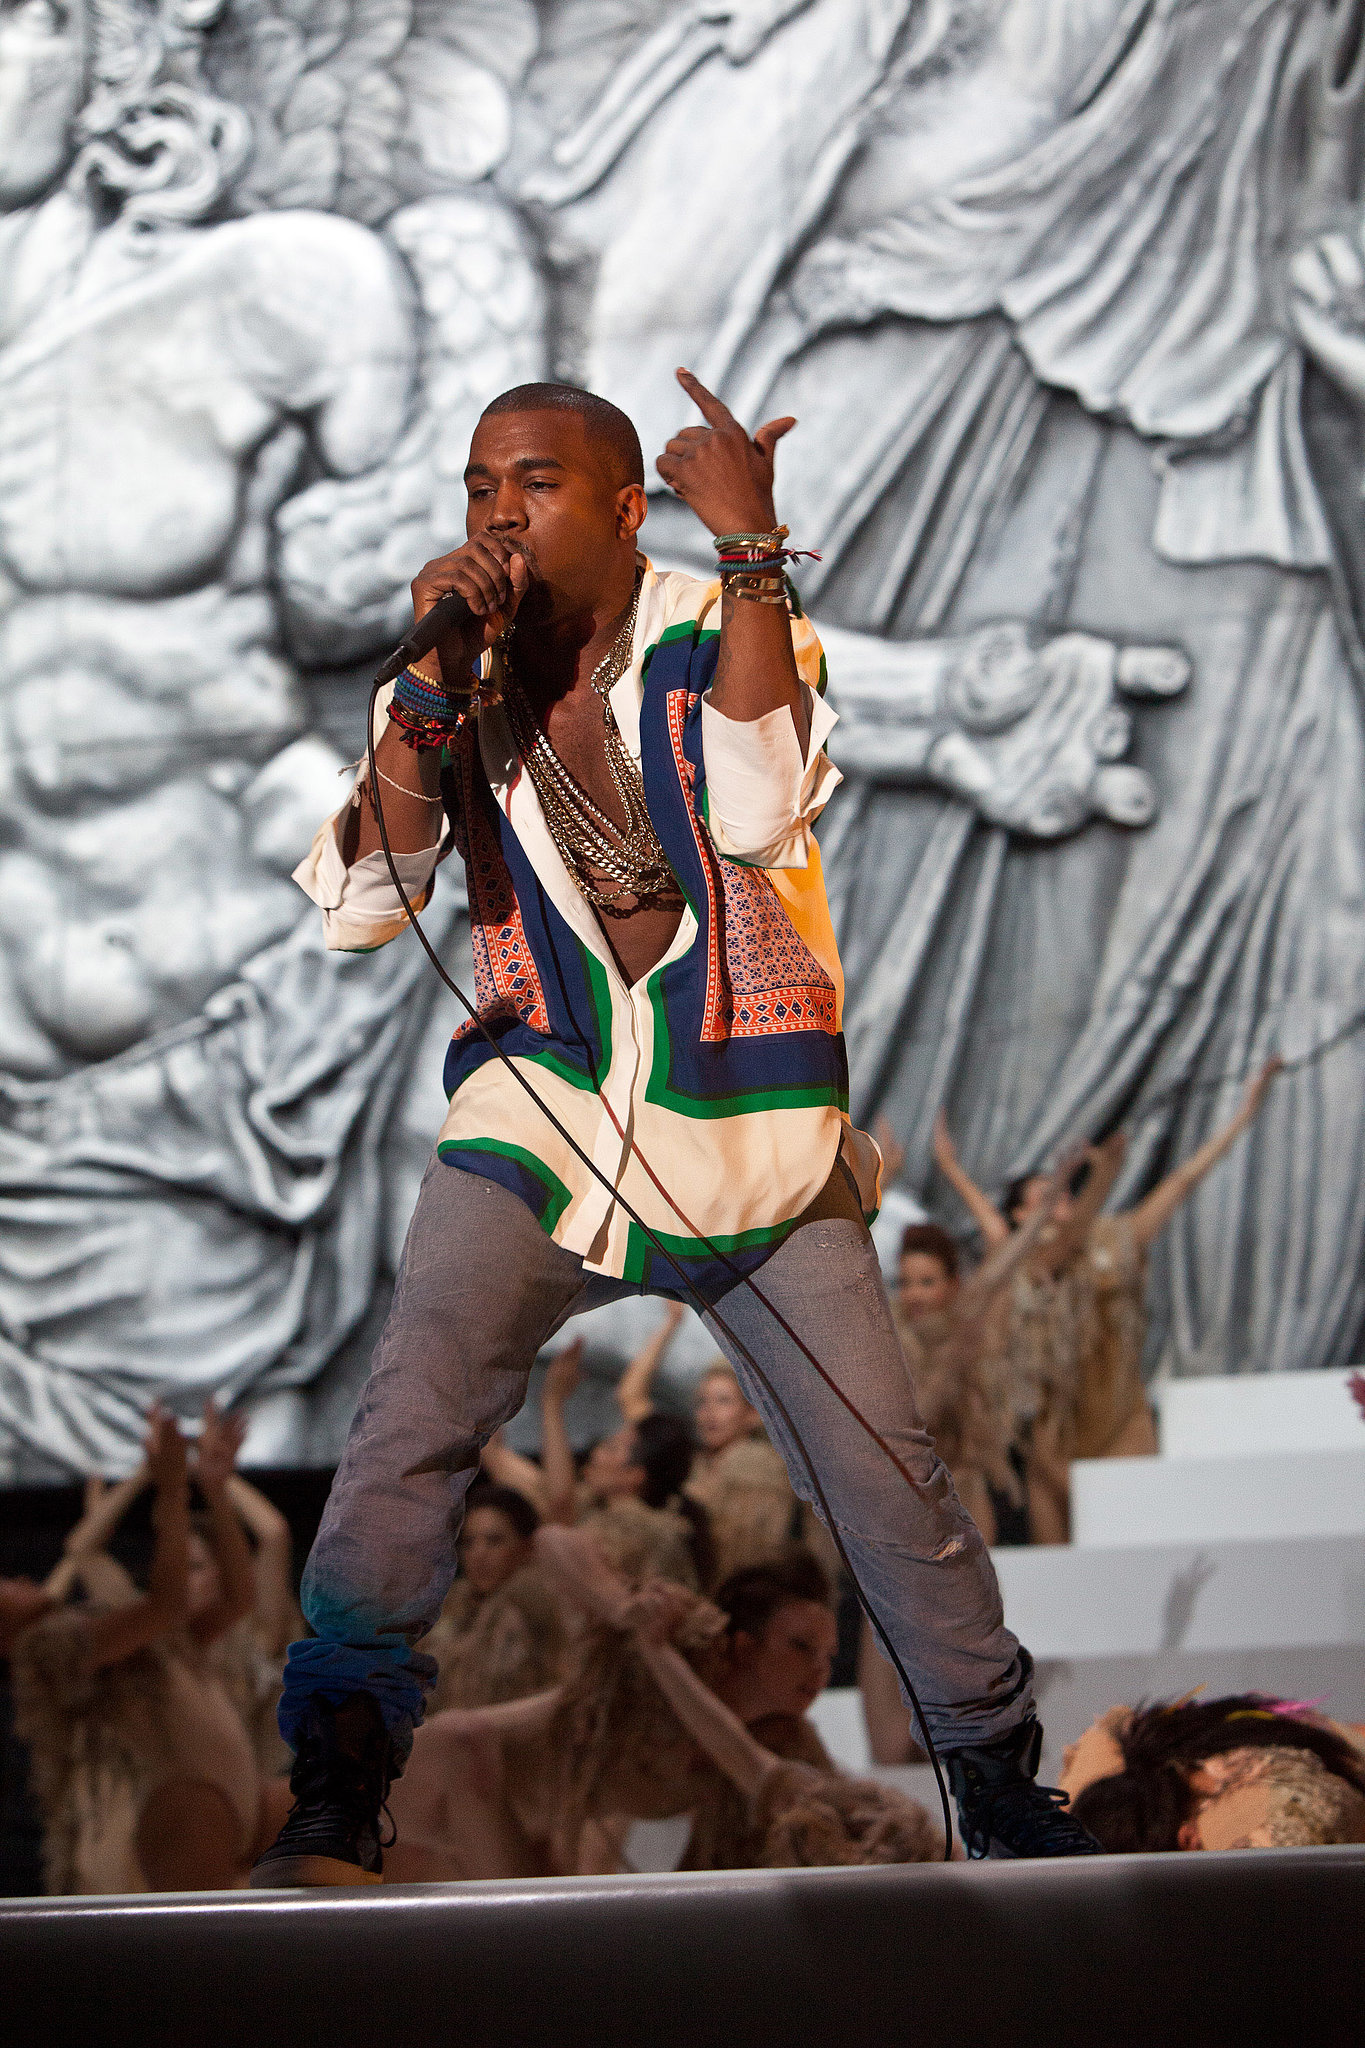 Kanye West took the stage at Coachella in 2011.